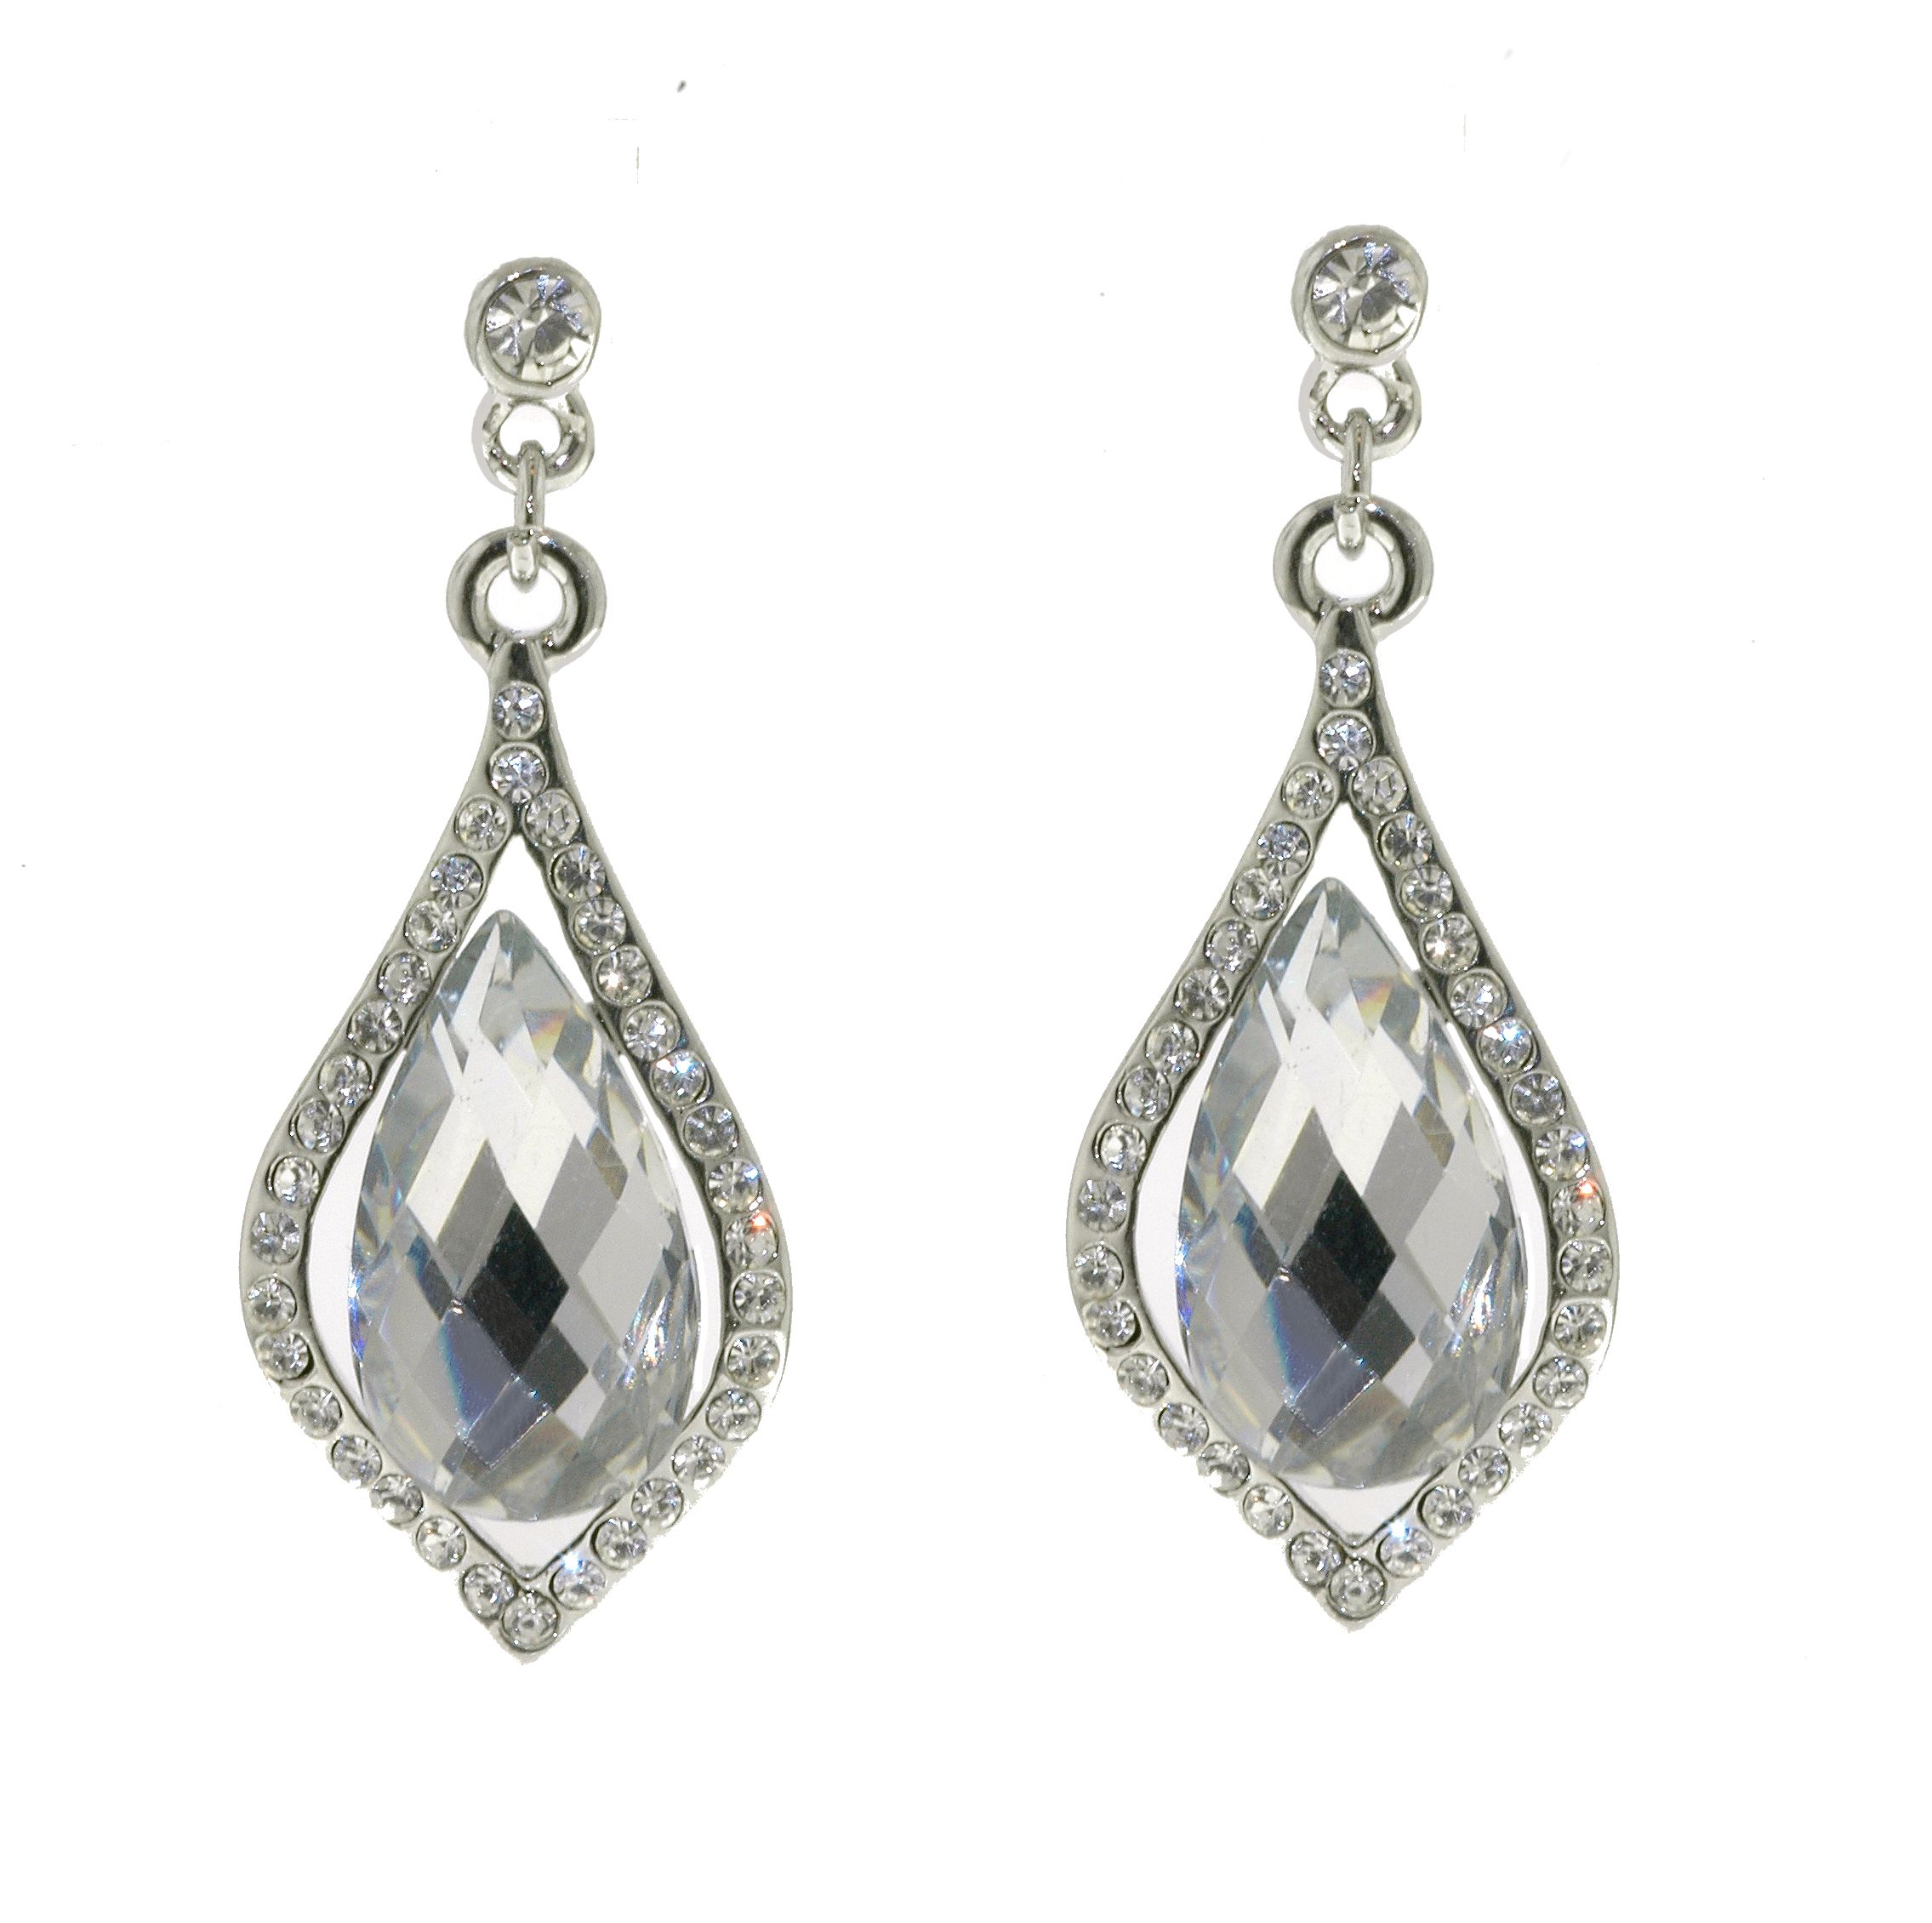 Silver & crystal pierced earrings